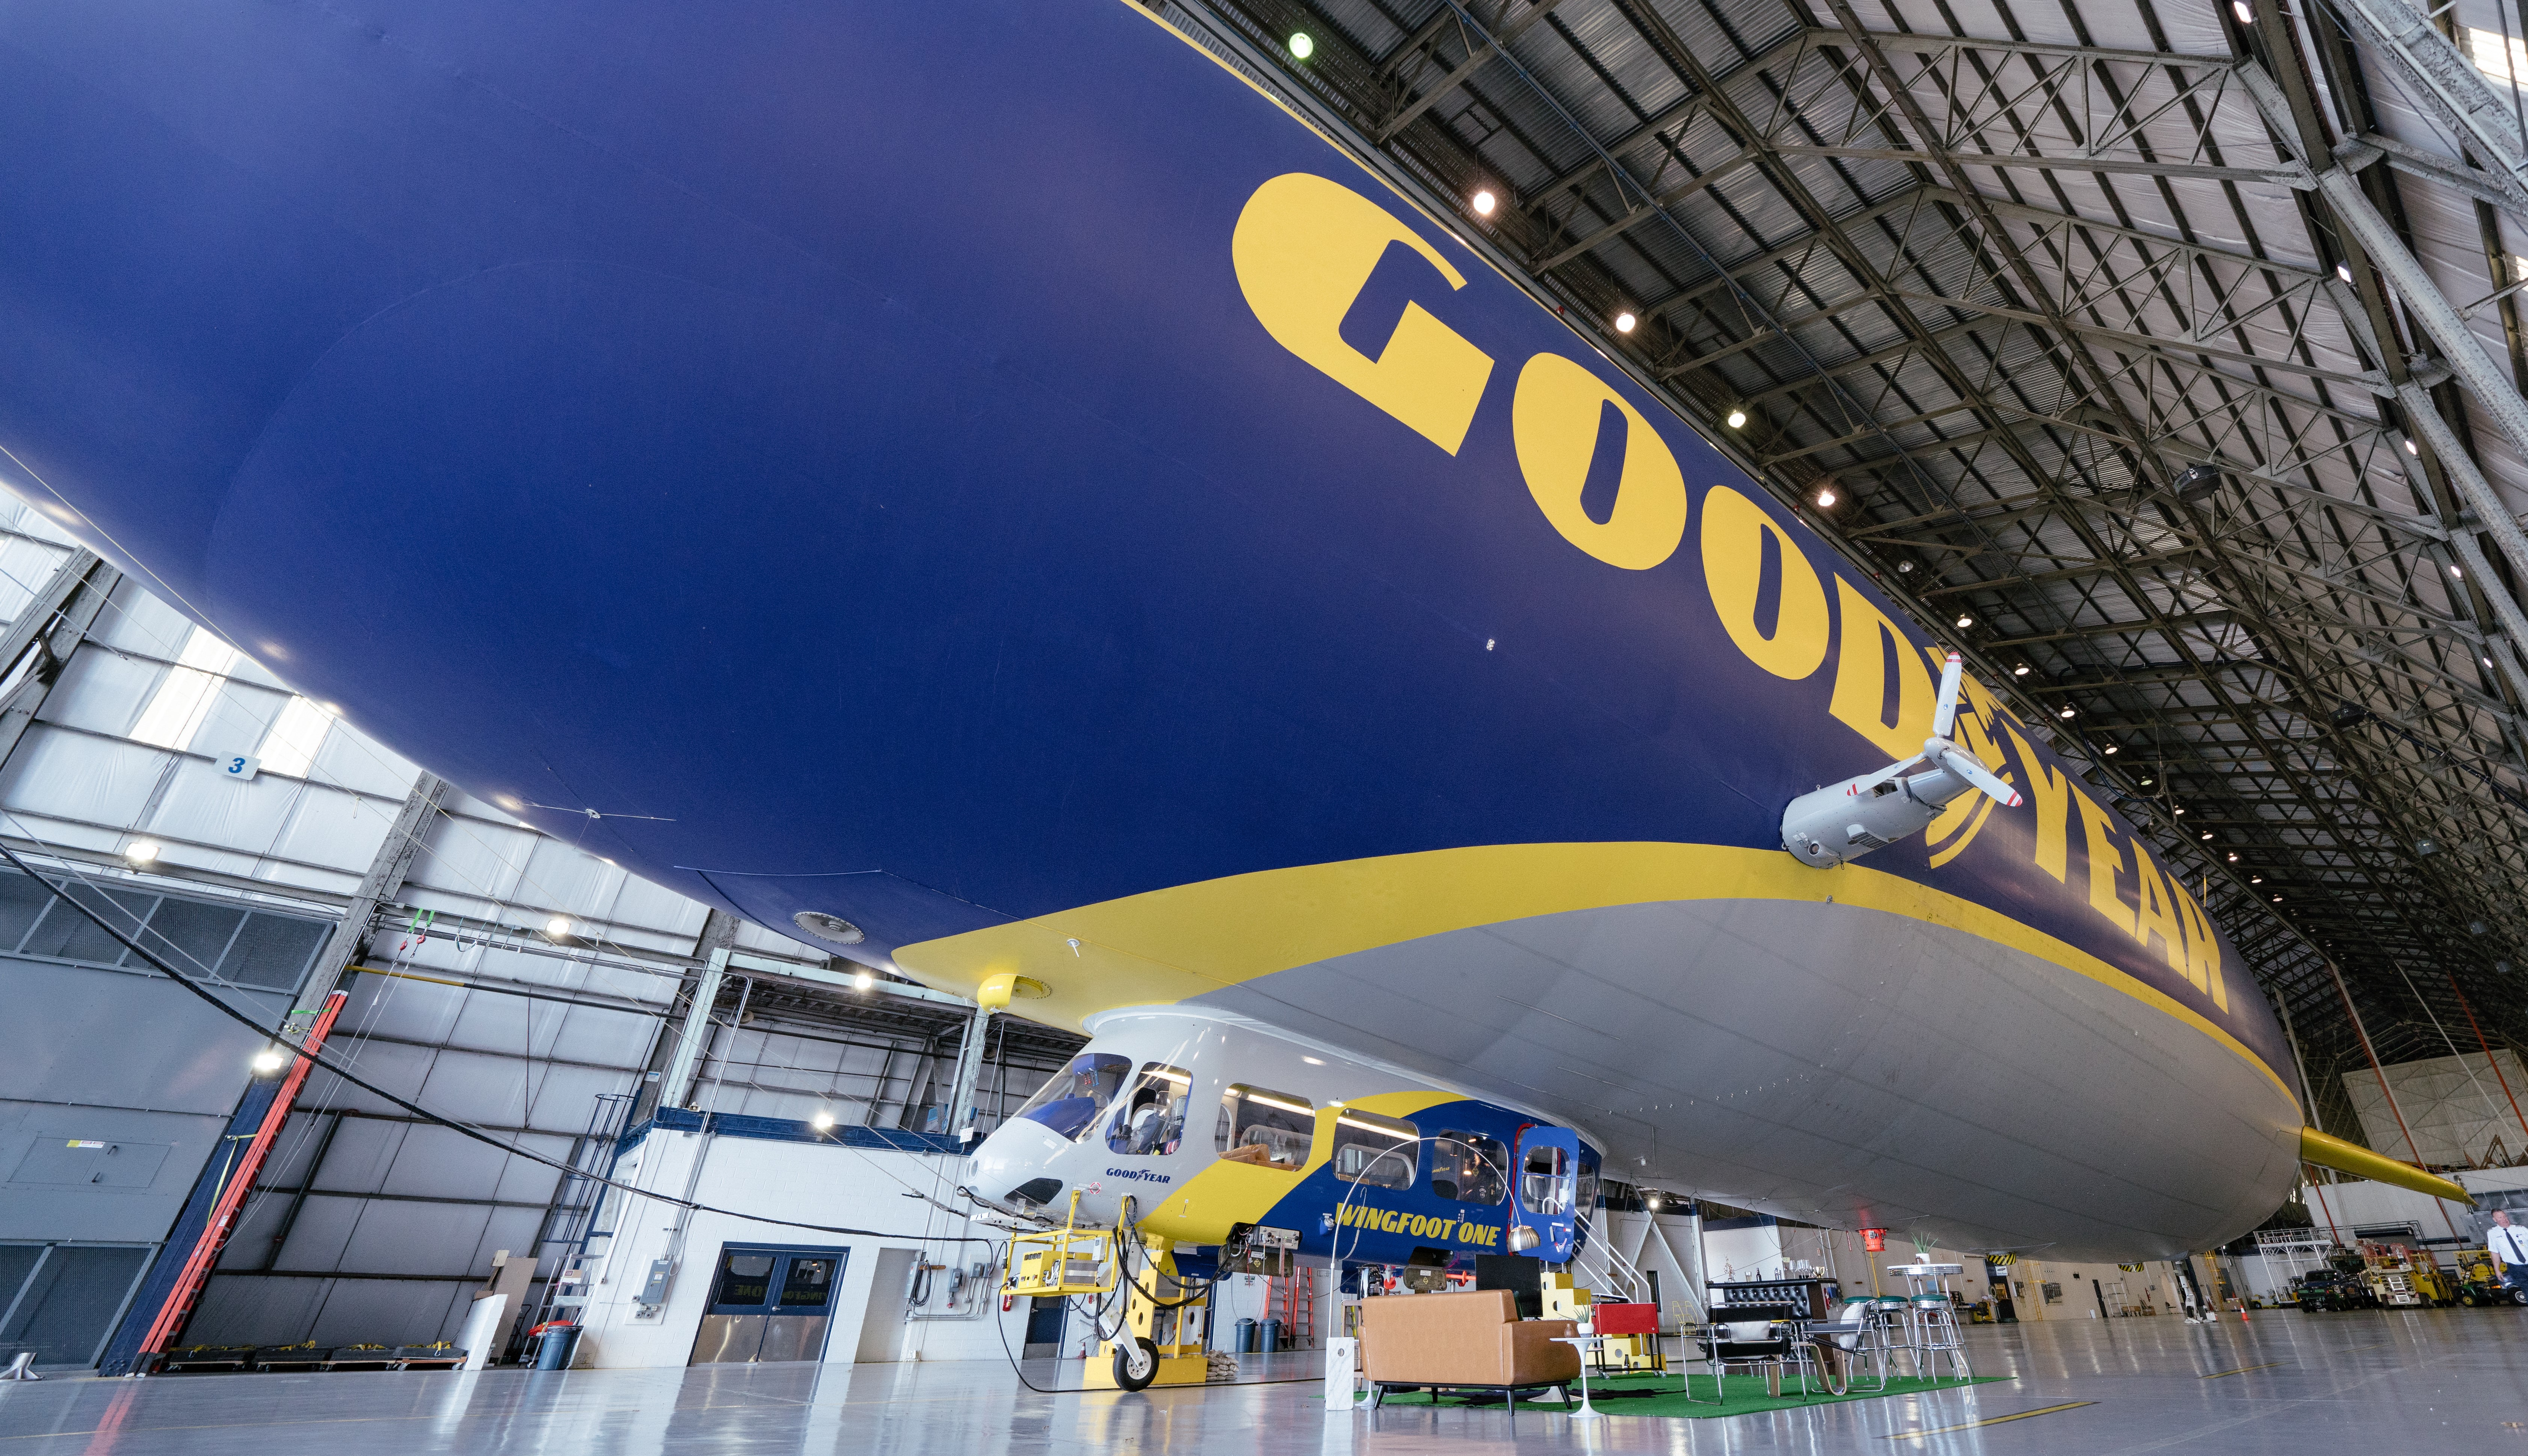 Goodyear Blimp listed for overnight stays on Airbnb